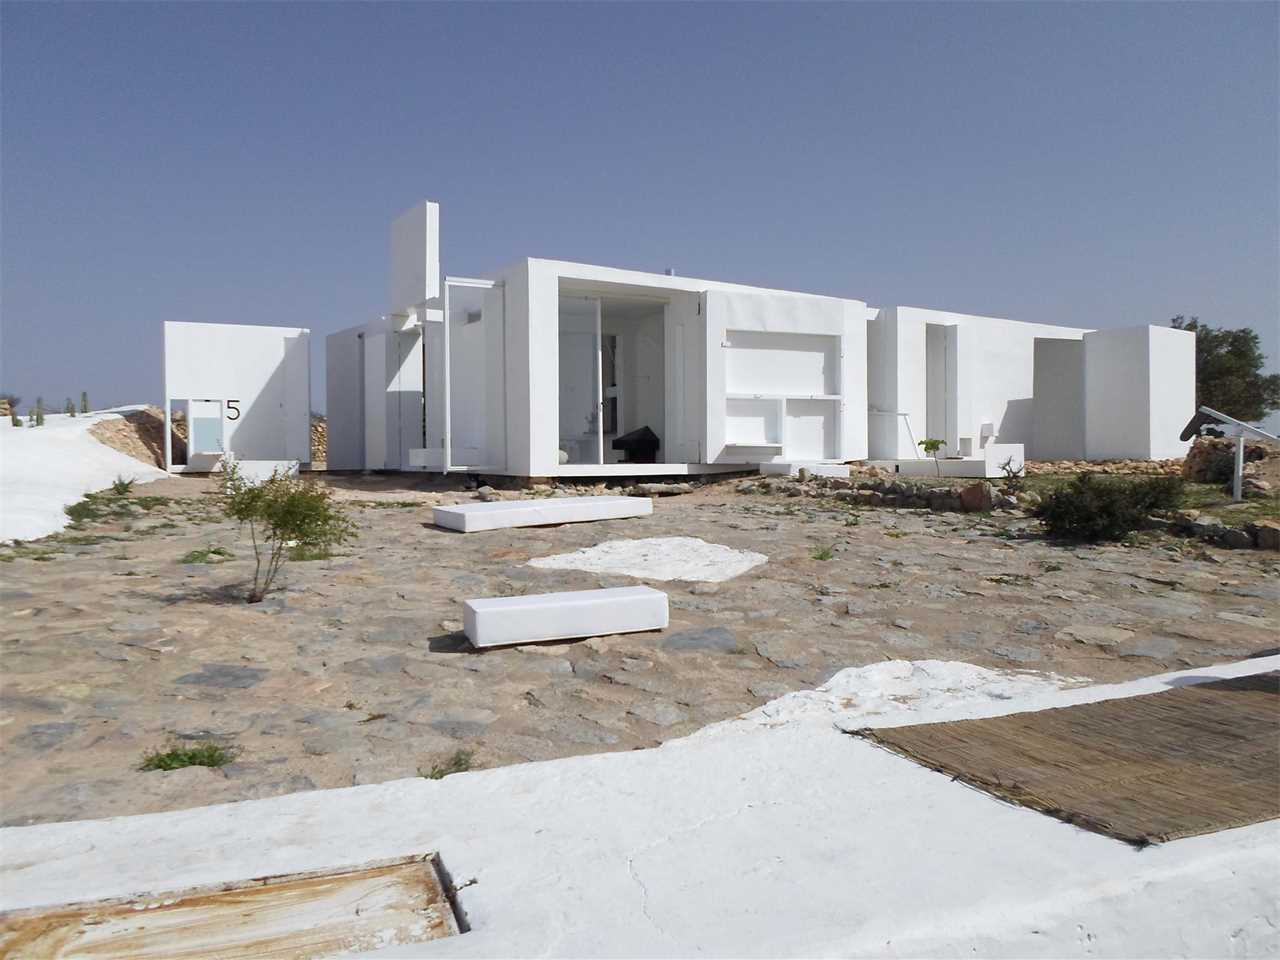 Project update June 2014 - Ecological dwelling in a semi-desert zone, near Tamanar, Morocco